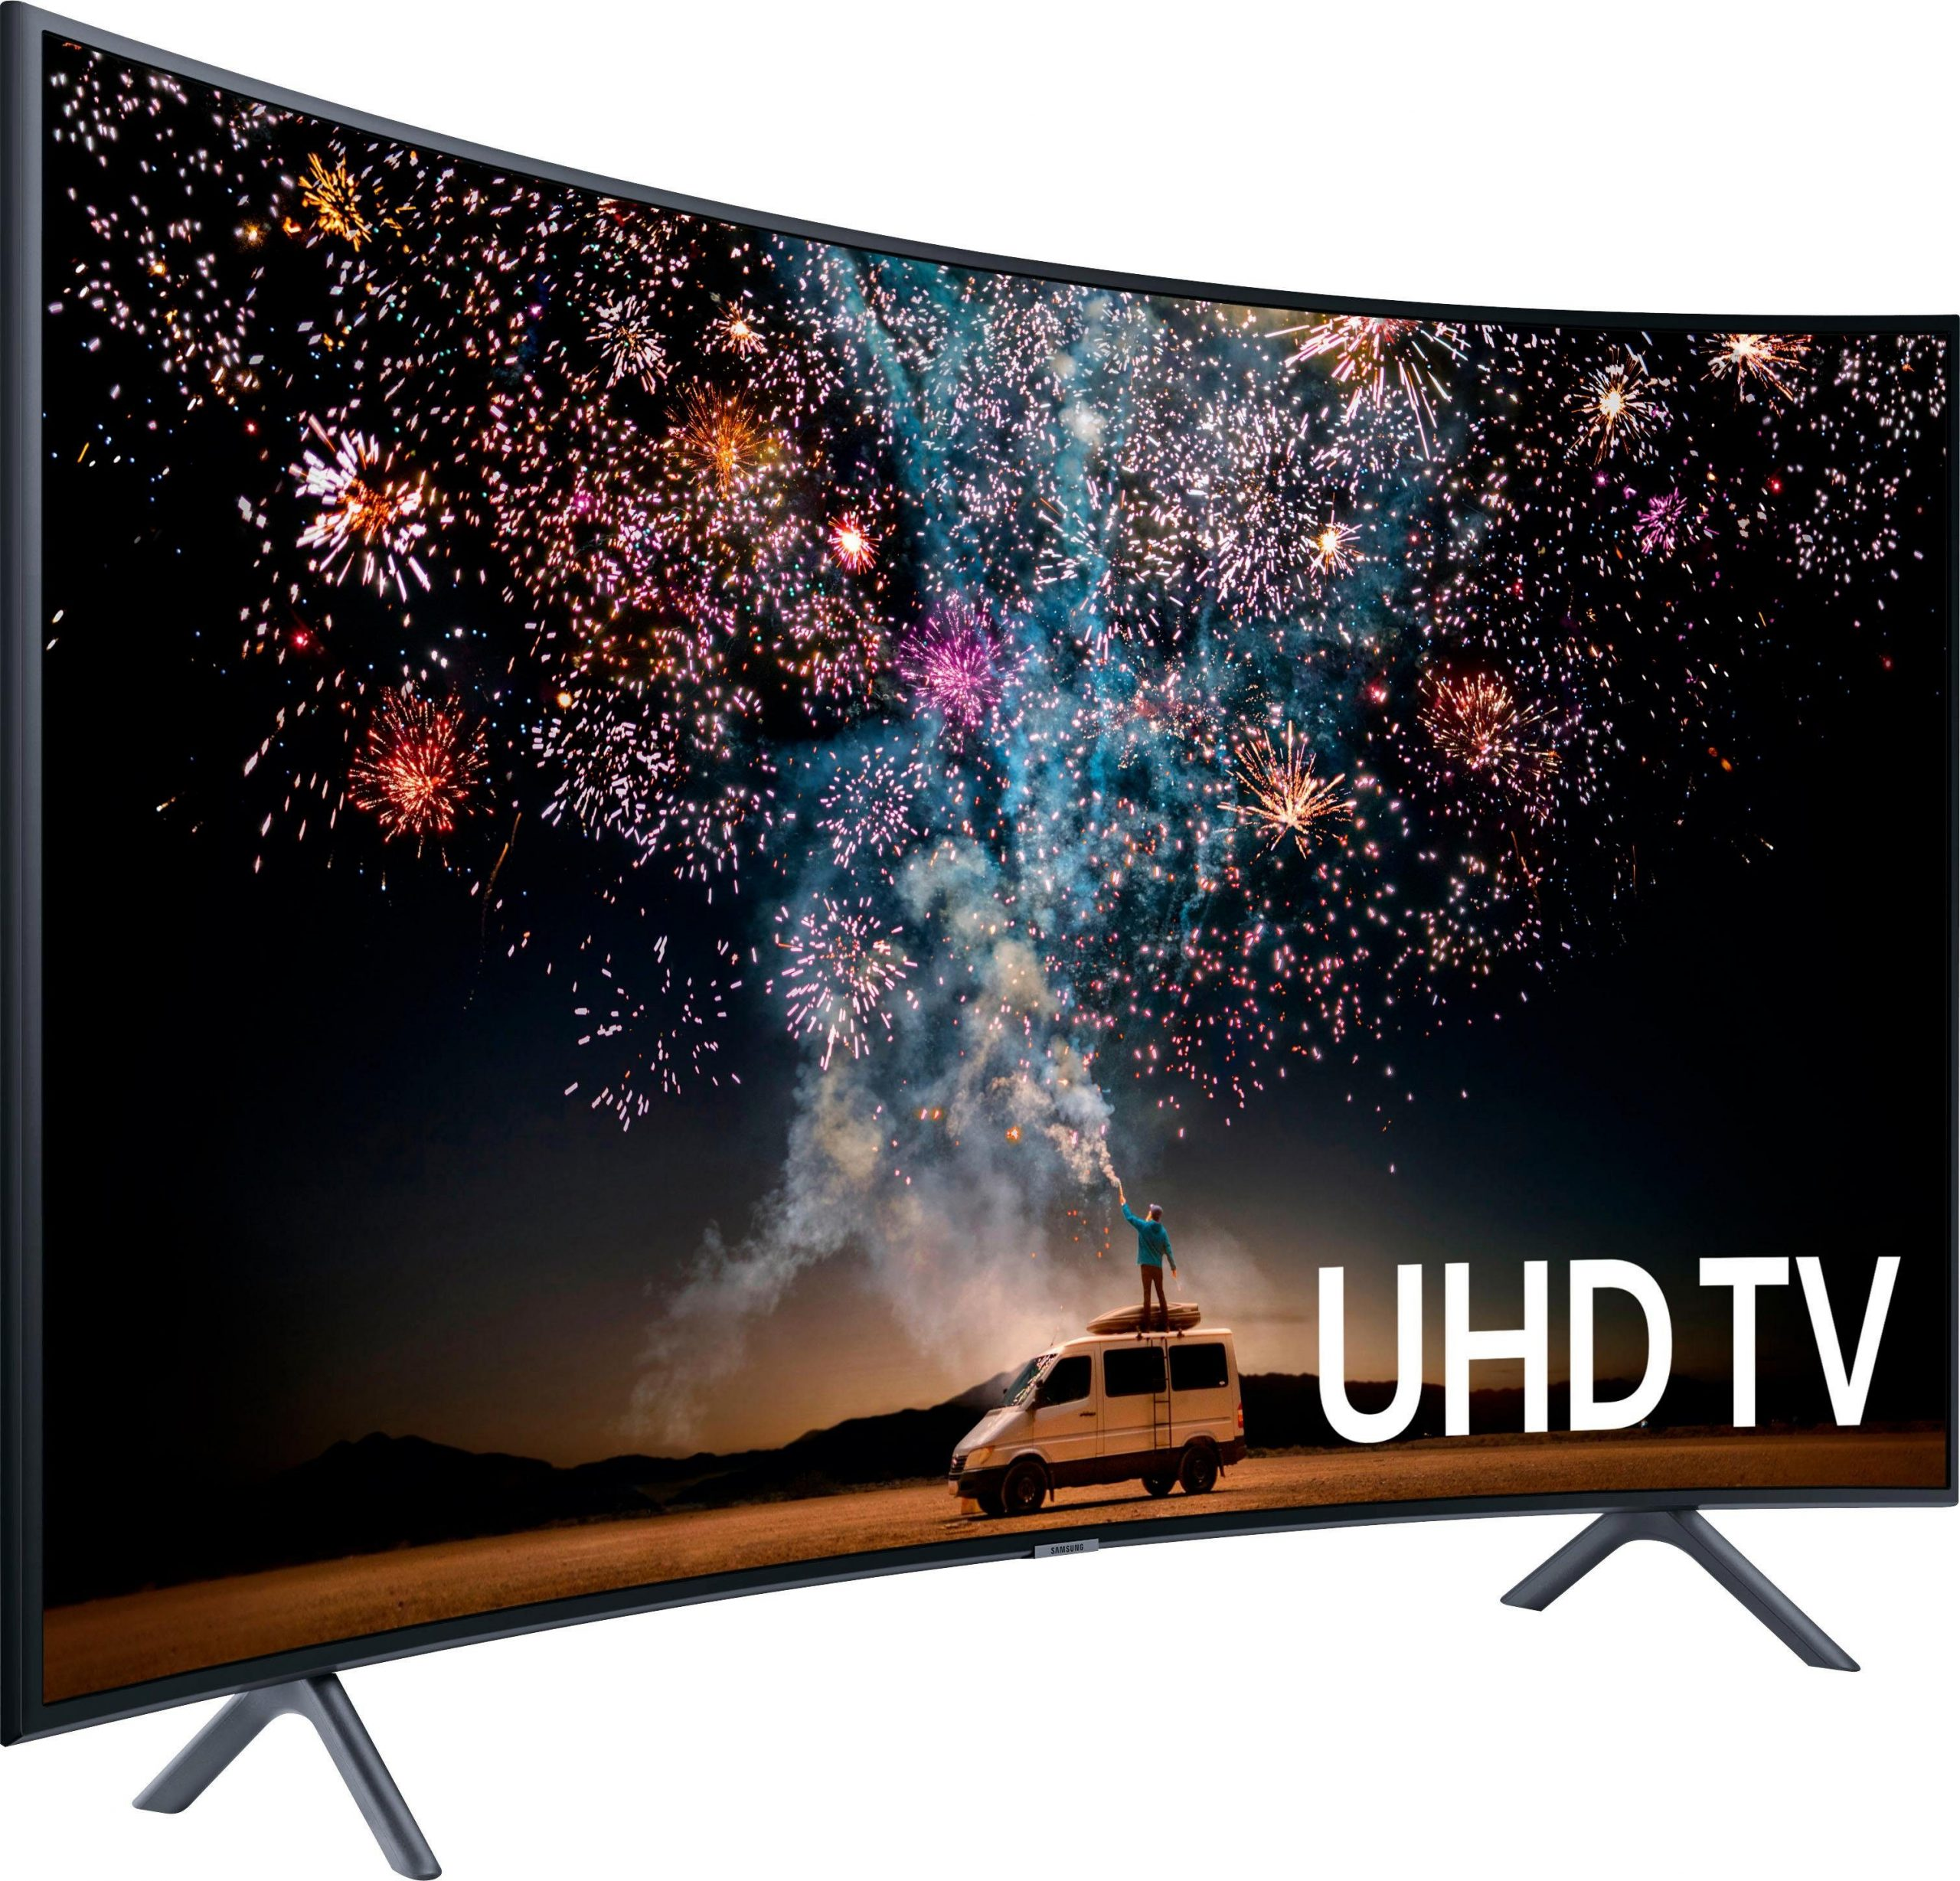 Samsung UE55RU7379 curved led-tv (138 cm / 55 inch), 4K Ultra HD